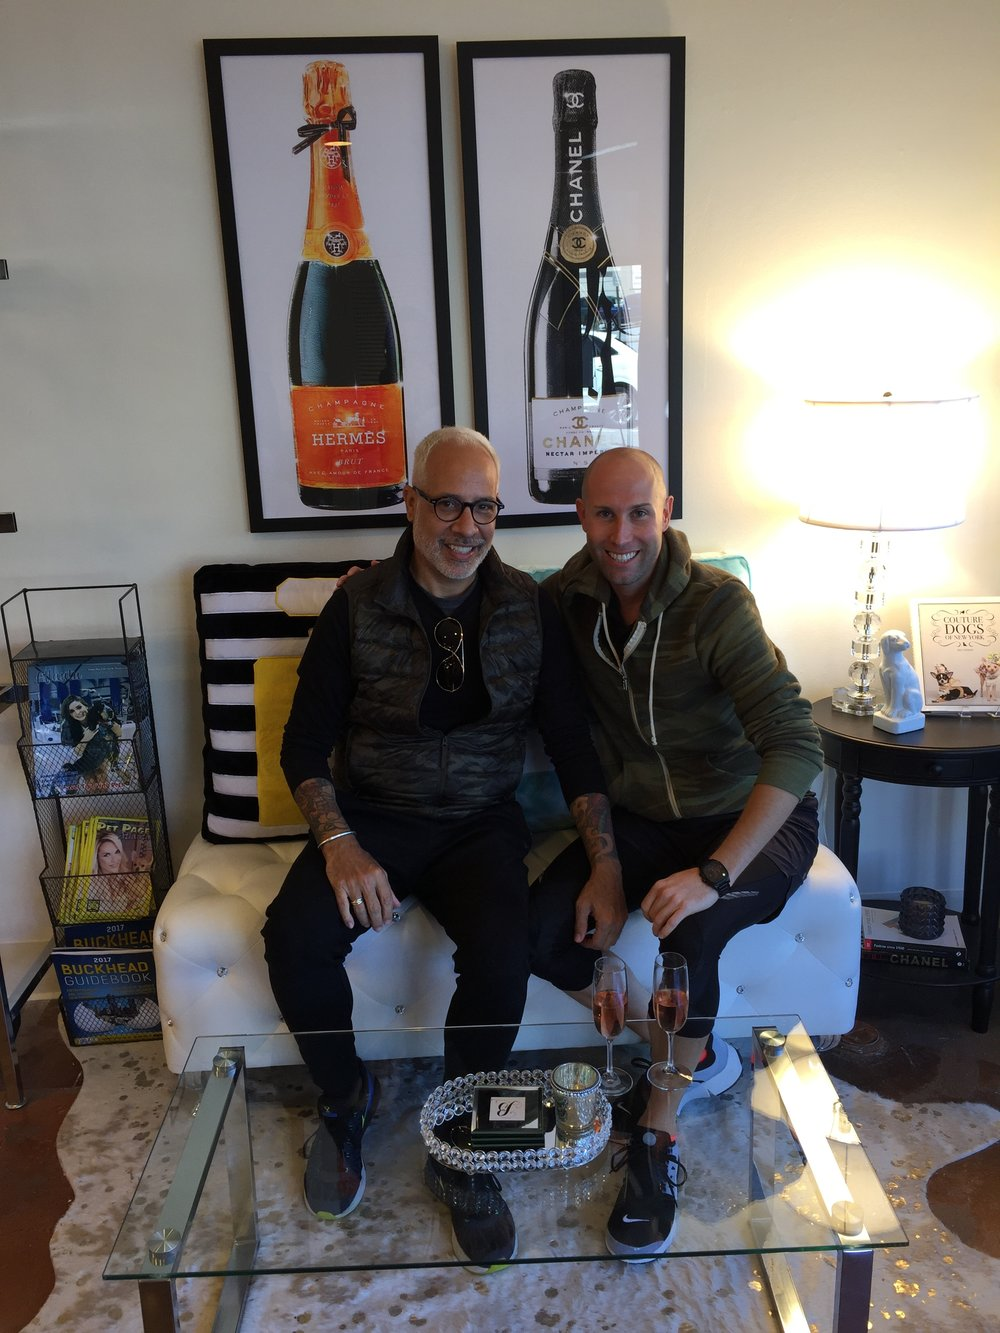 Alex Page and I shared a designer moment at Bark Fifth Ave.